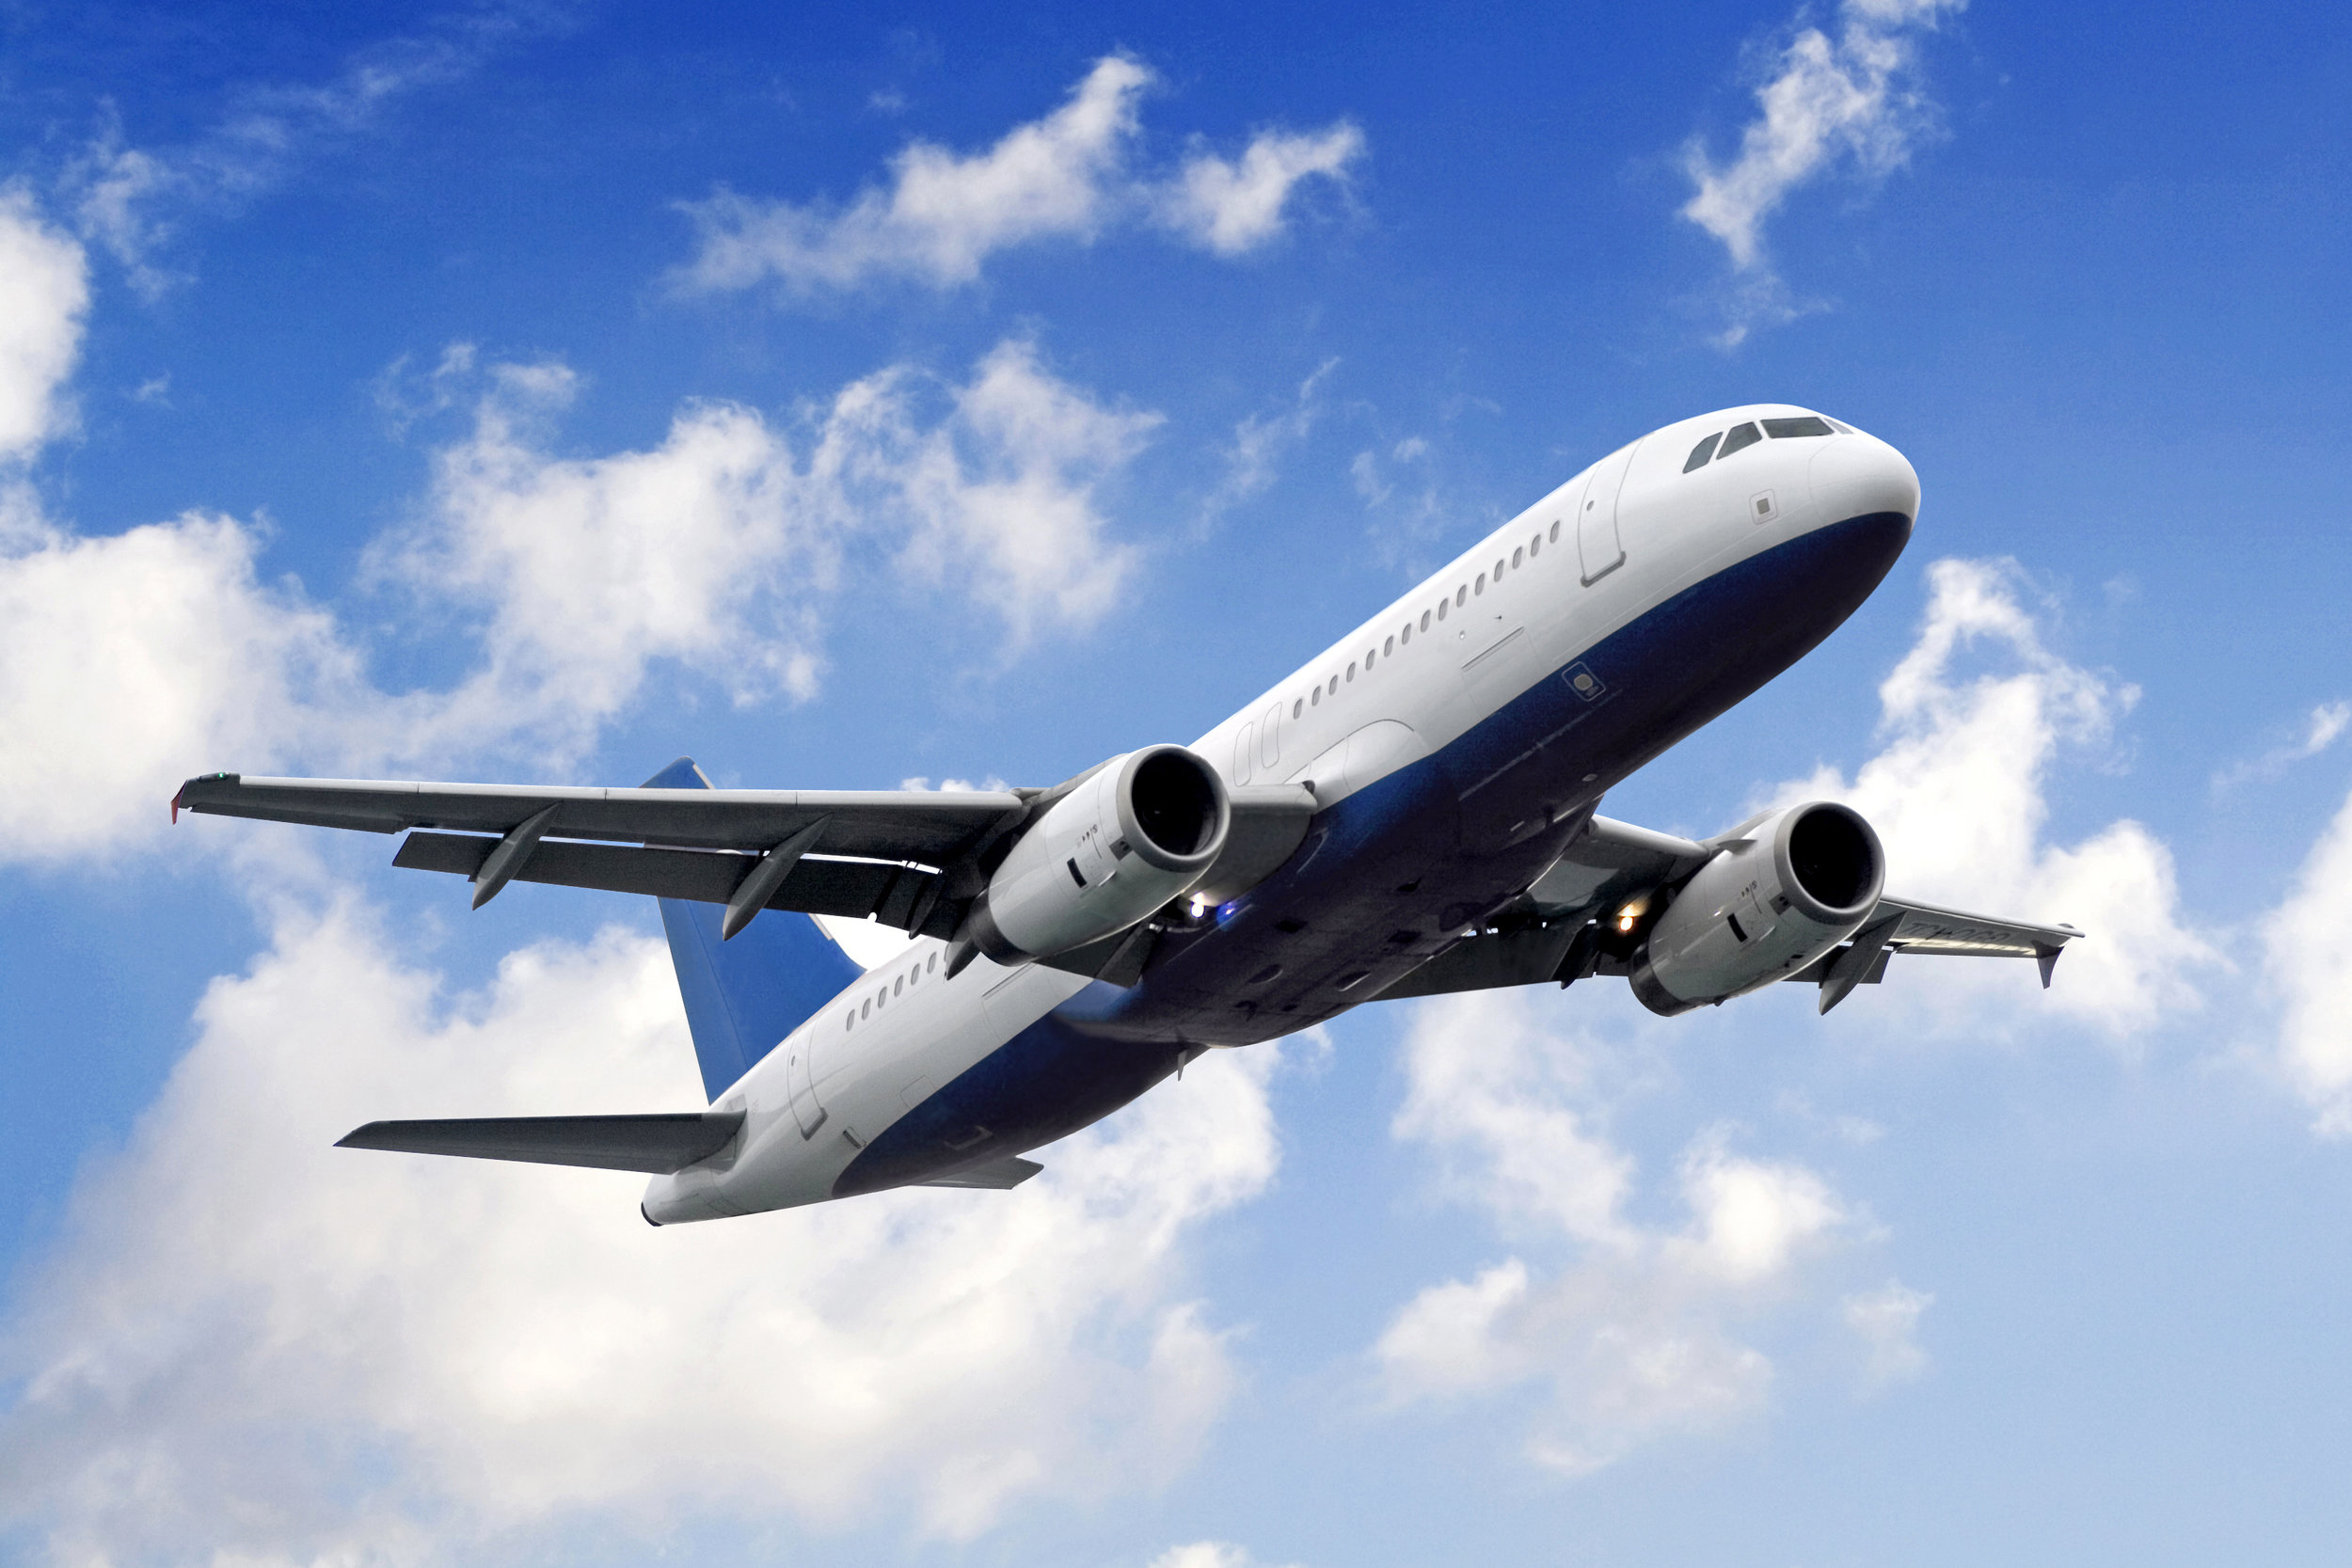 FLIGHT INFO: - United Airlines Confirmation:MYS7K2DEPARTING on United flight:UA0515May 20, 2018 at 6pmCMH to ORD (arriving at 625pm)Departing on United flight:UA0152at 905pmORD to DUBARRIVING May 21, 2018:DUB at 1045amDEPARTING on United flight:UA0022June 1, 2018 at 920amDUB to EWR (arriving at 1135am)Departing on United flight:UA4099at 222pmEWR to CMHARRIVING June 1, 2018:CMH at 415pm